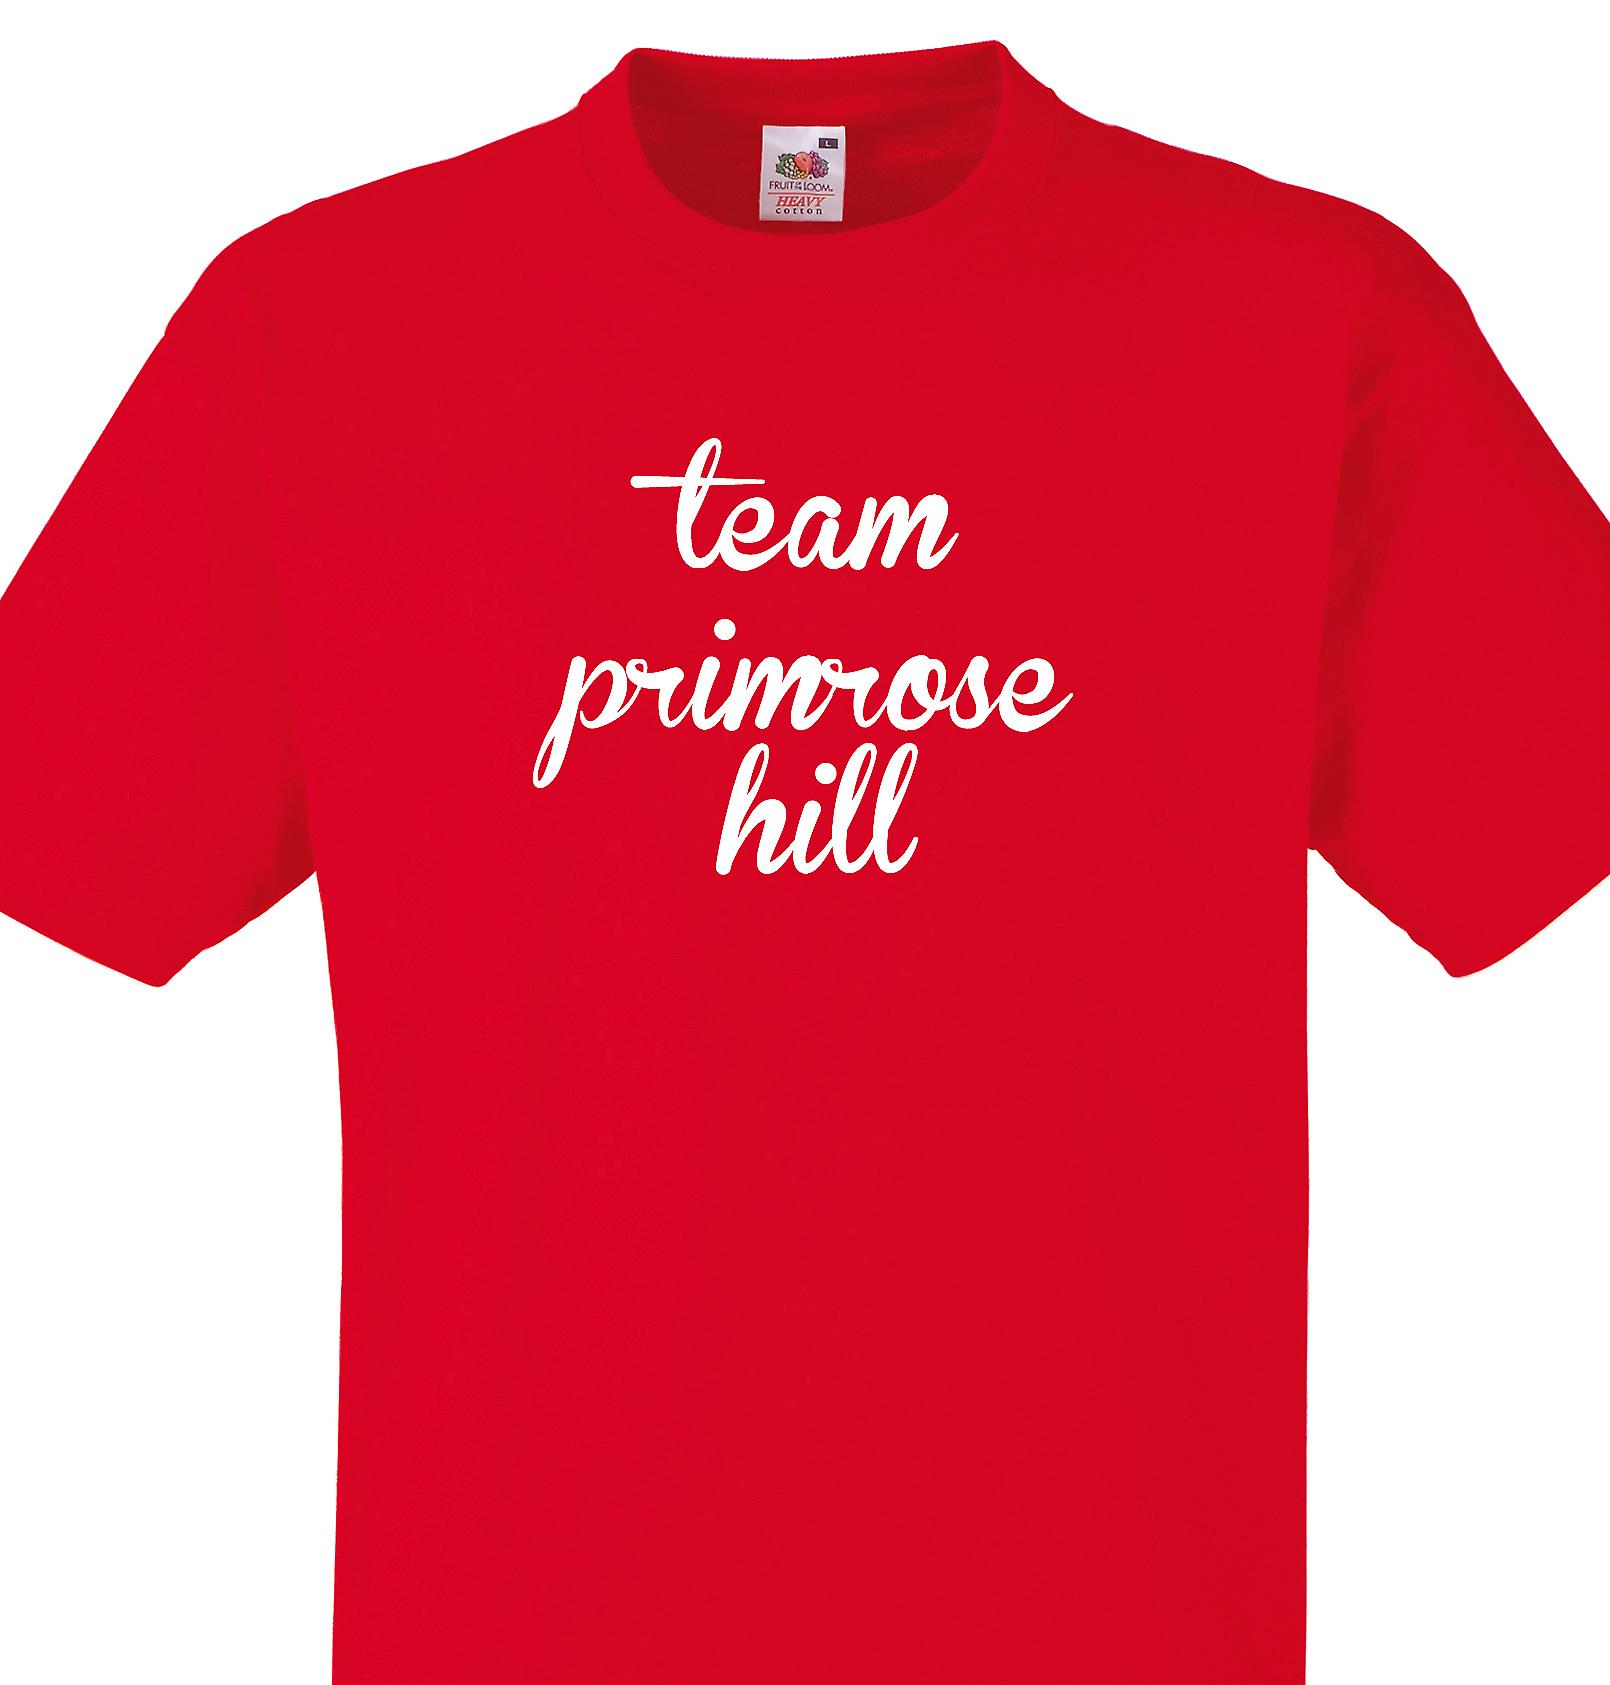 Team Primrose hill Red T shirt